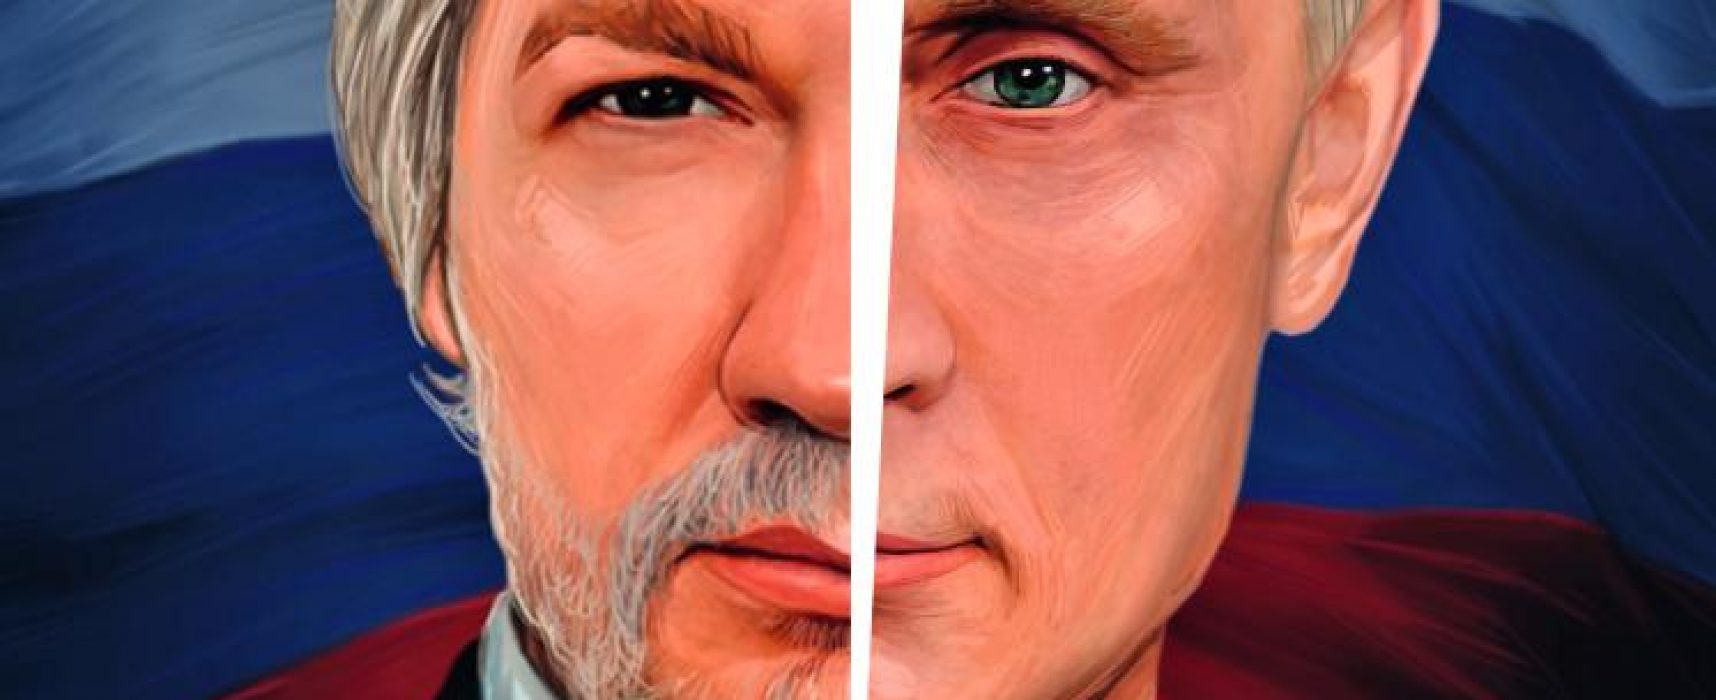 How Russia and WikiLeaks Became Allies Against the West